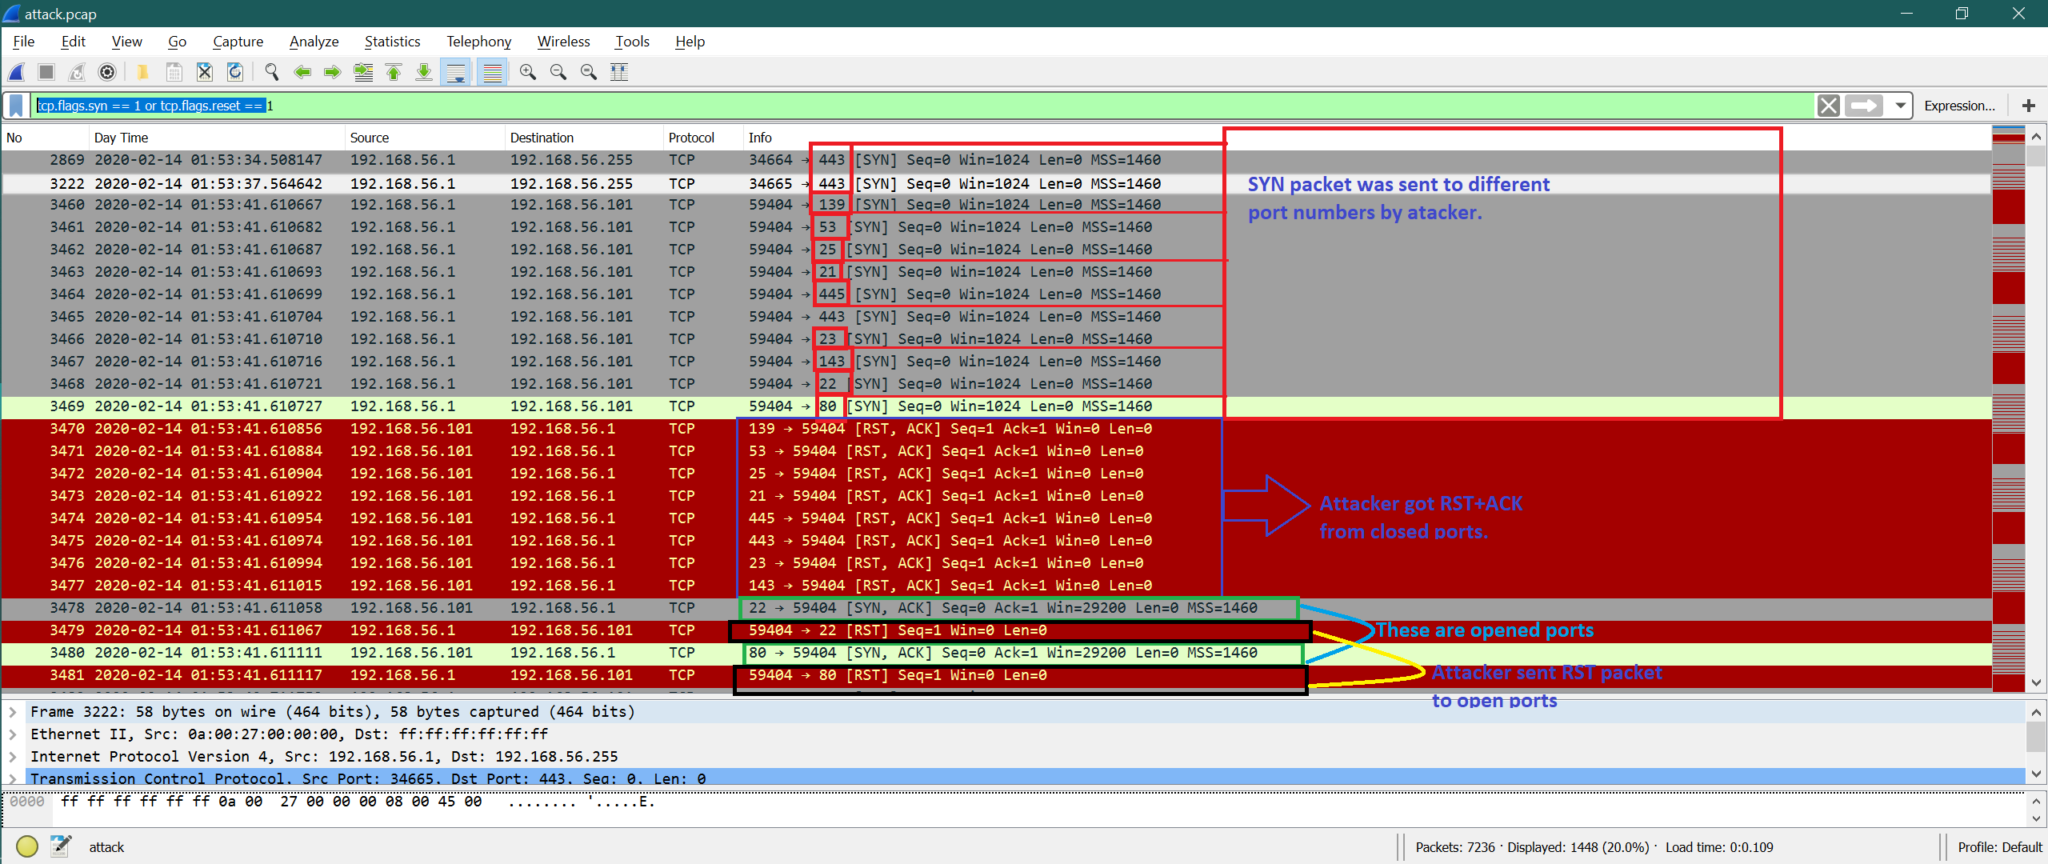 E:fiverrWorkLinuxhint_mail74838BOOK - Linux Forensics Tools & Techniquespicport_scan.png